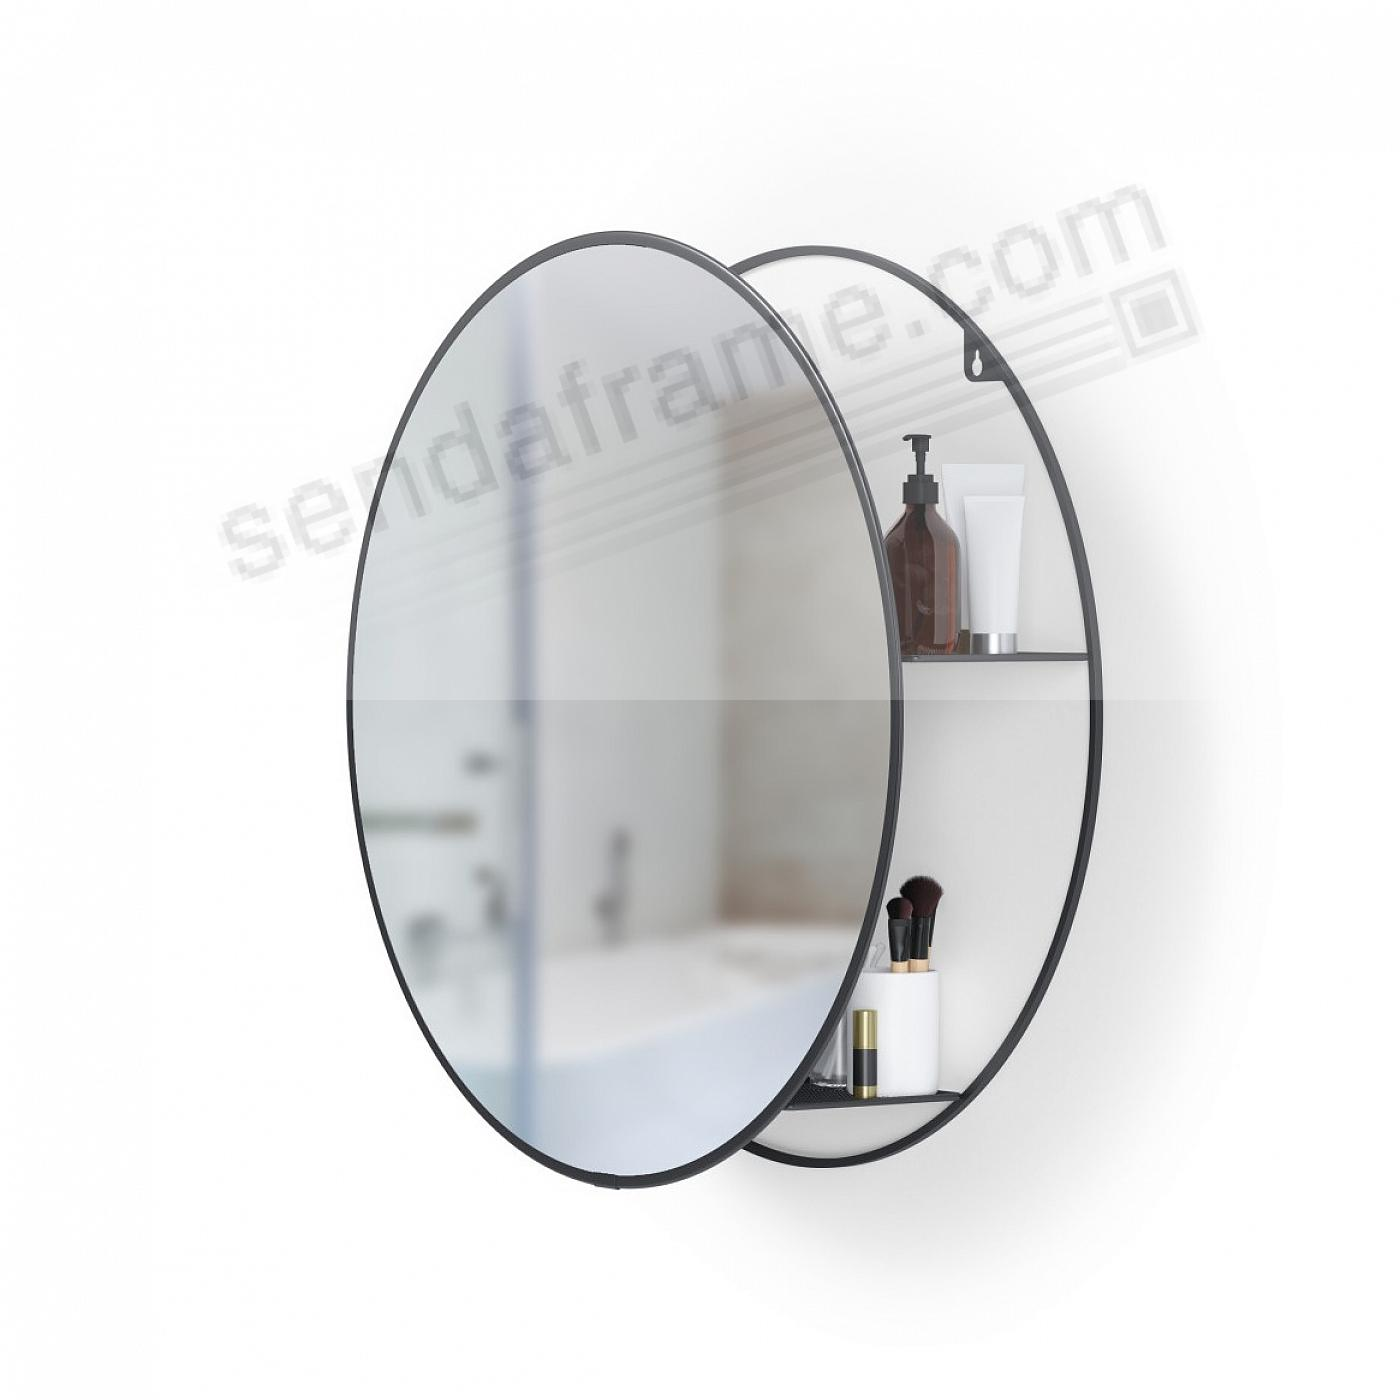 The CIRKO Mirror and Storage Unit Black by Umbra®